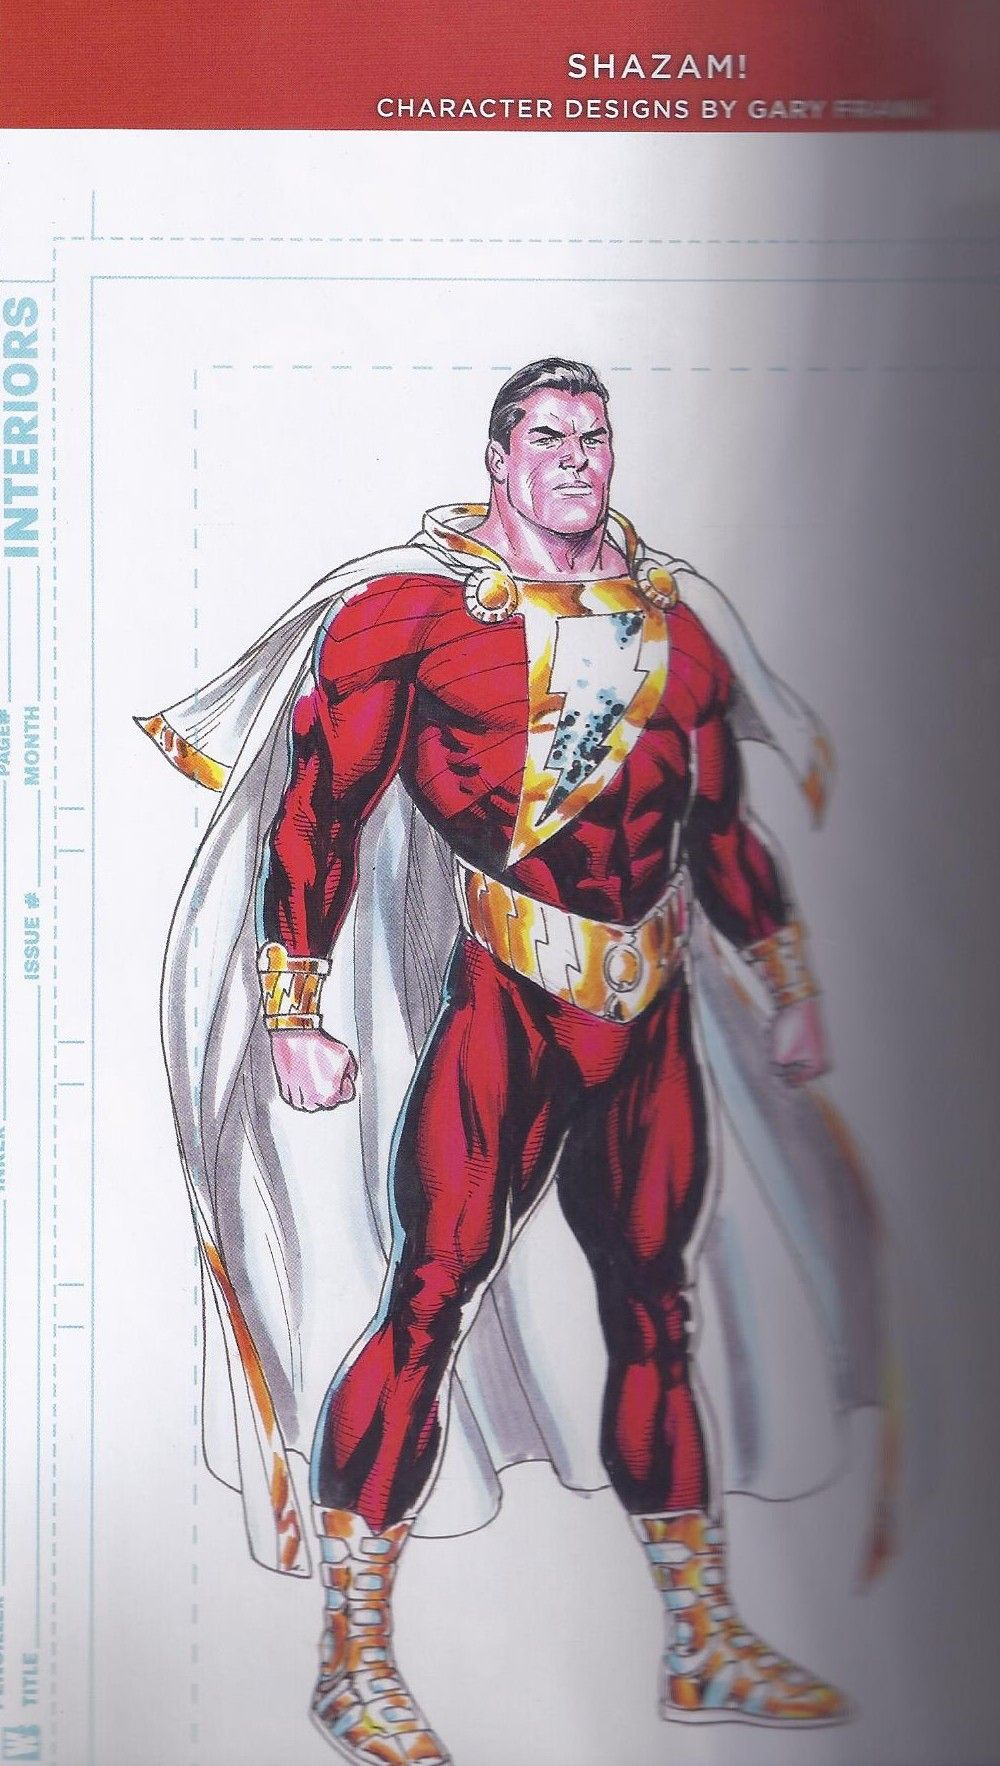 Shazam DC New 52 Gary Frank Character Designs art 1 | Comic Images ...